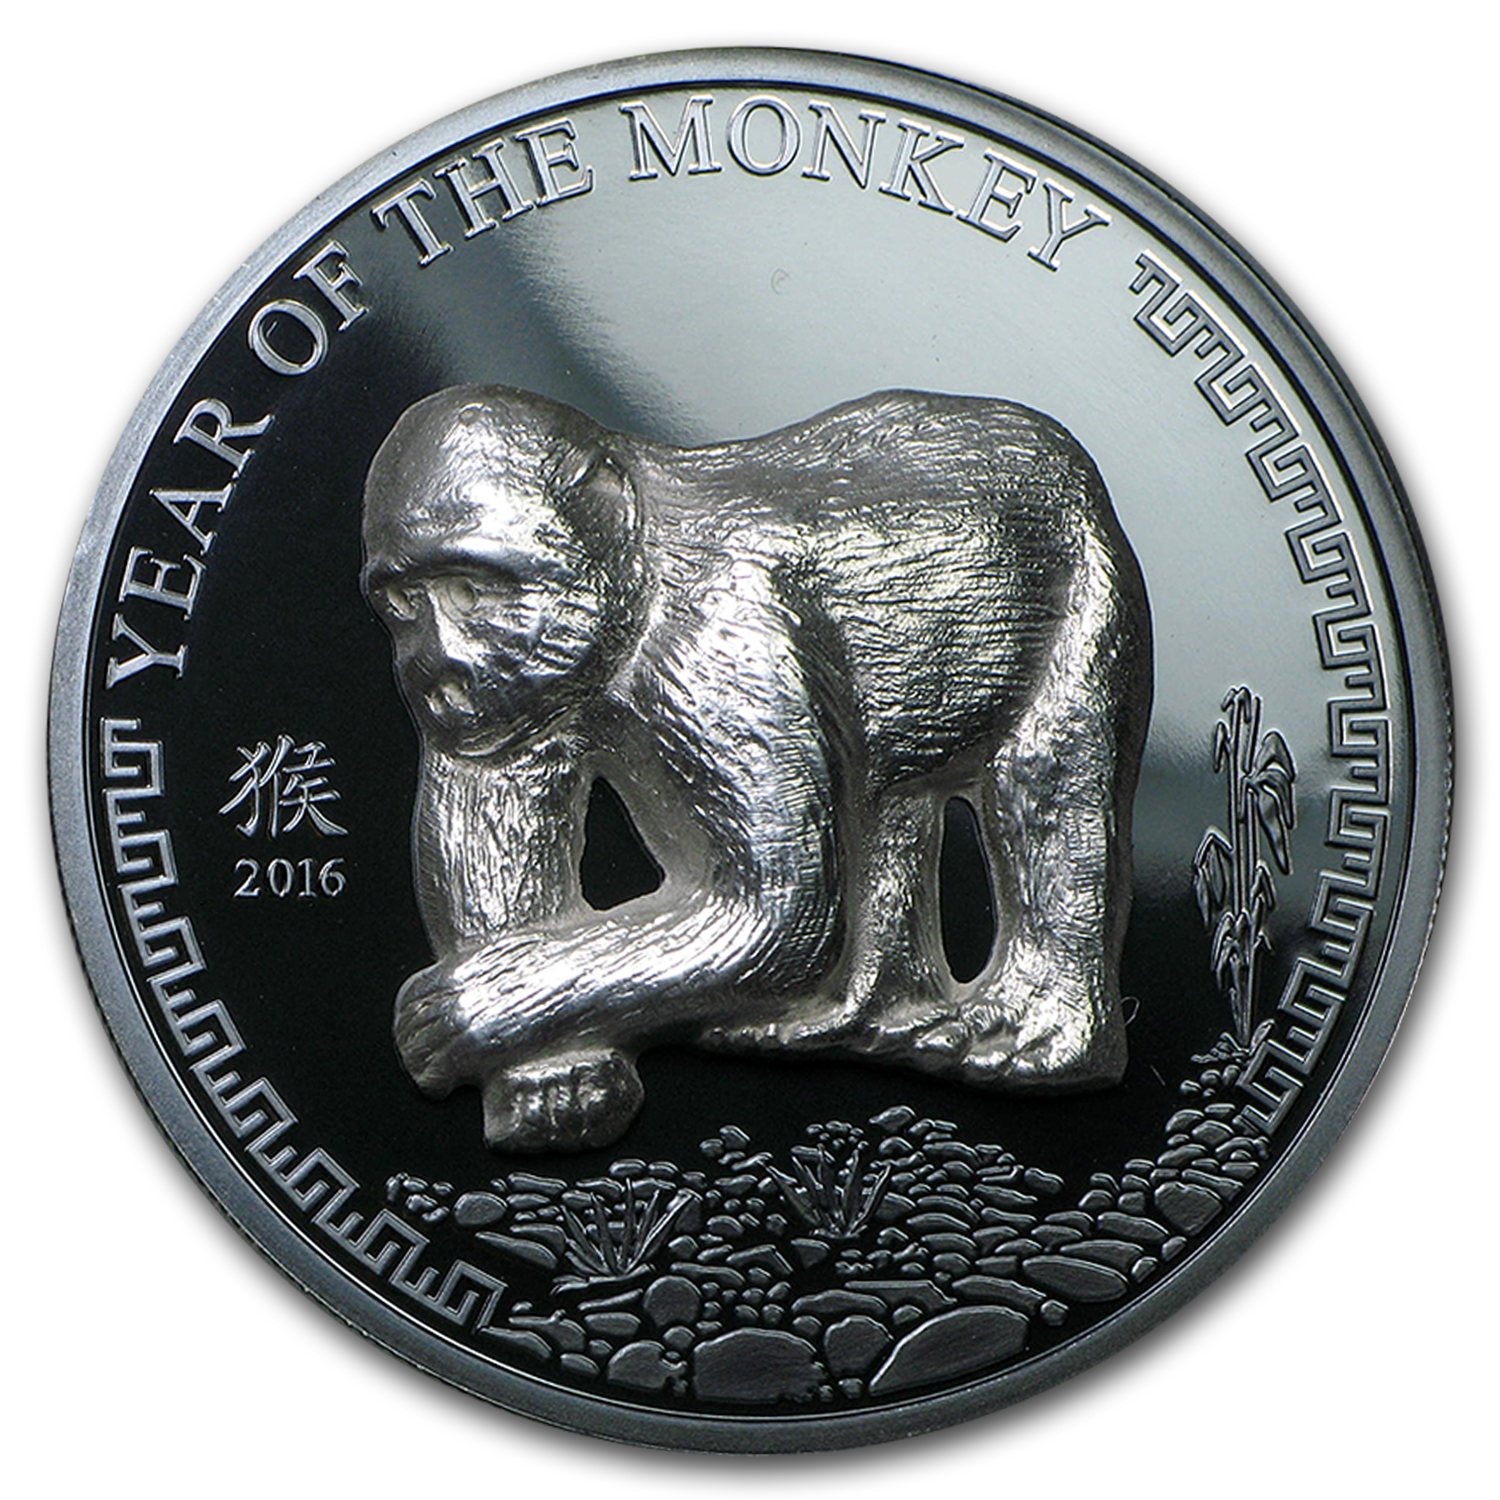 2016 Mongolia Silver 500 Togrog Year of the Monkey (High Relief)